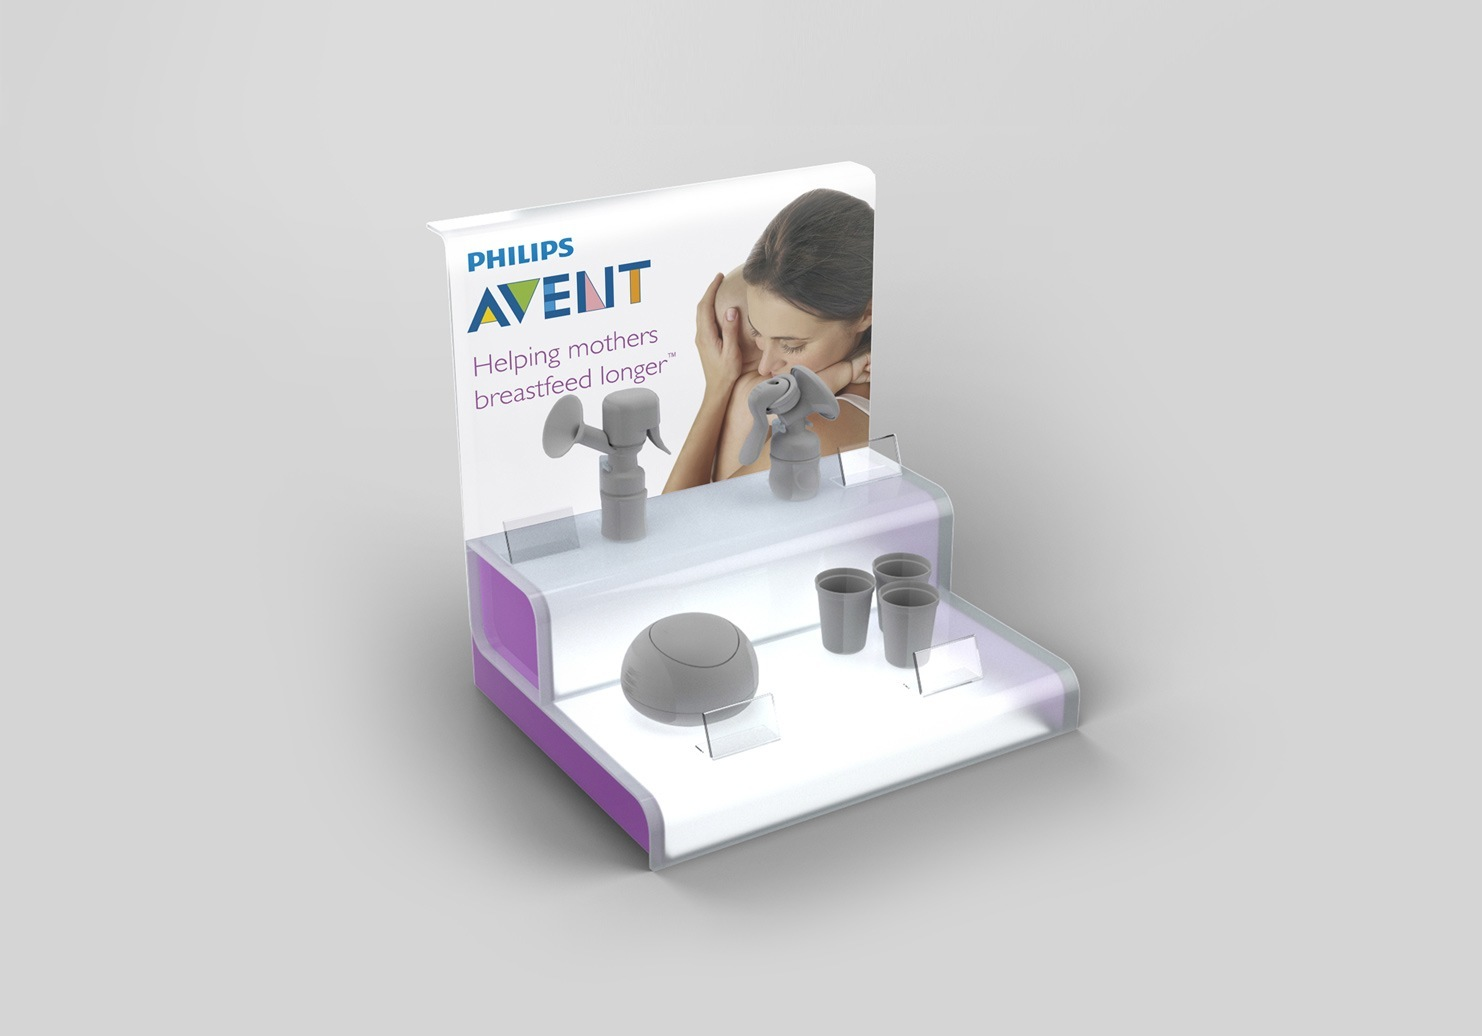 Philips Avent Display Stands